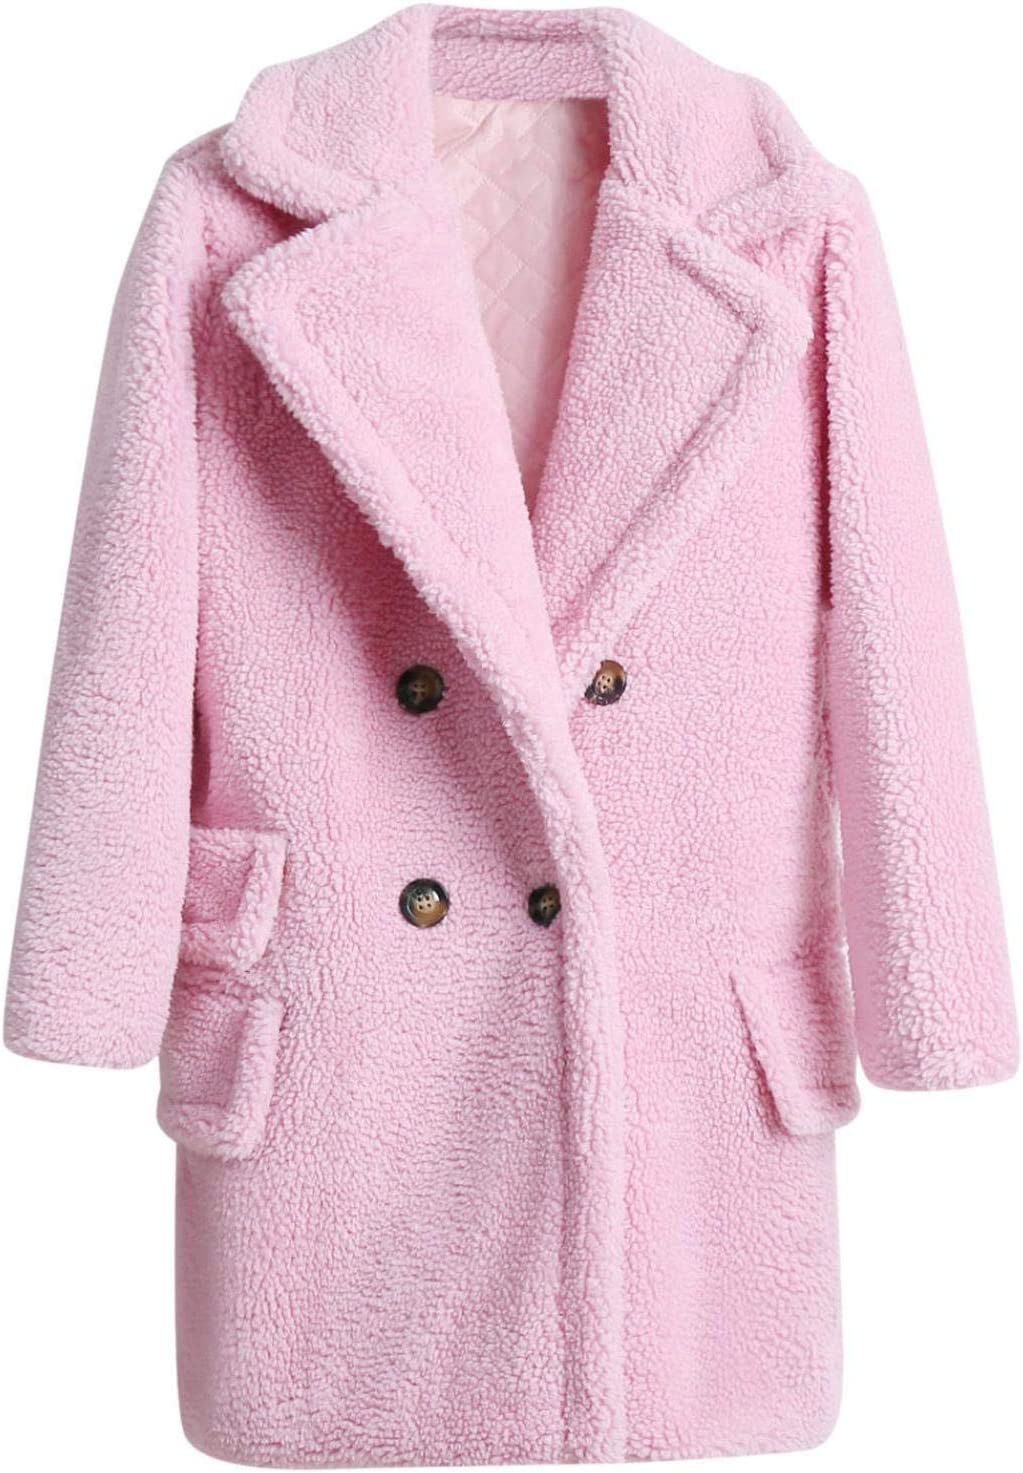 Smileyth Women's Thick Solid Overcoat B Long Max 54% OFF Lapel Double Quality inspection Sleeve